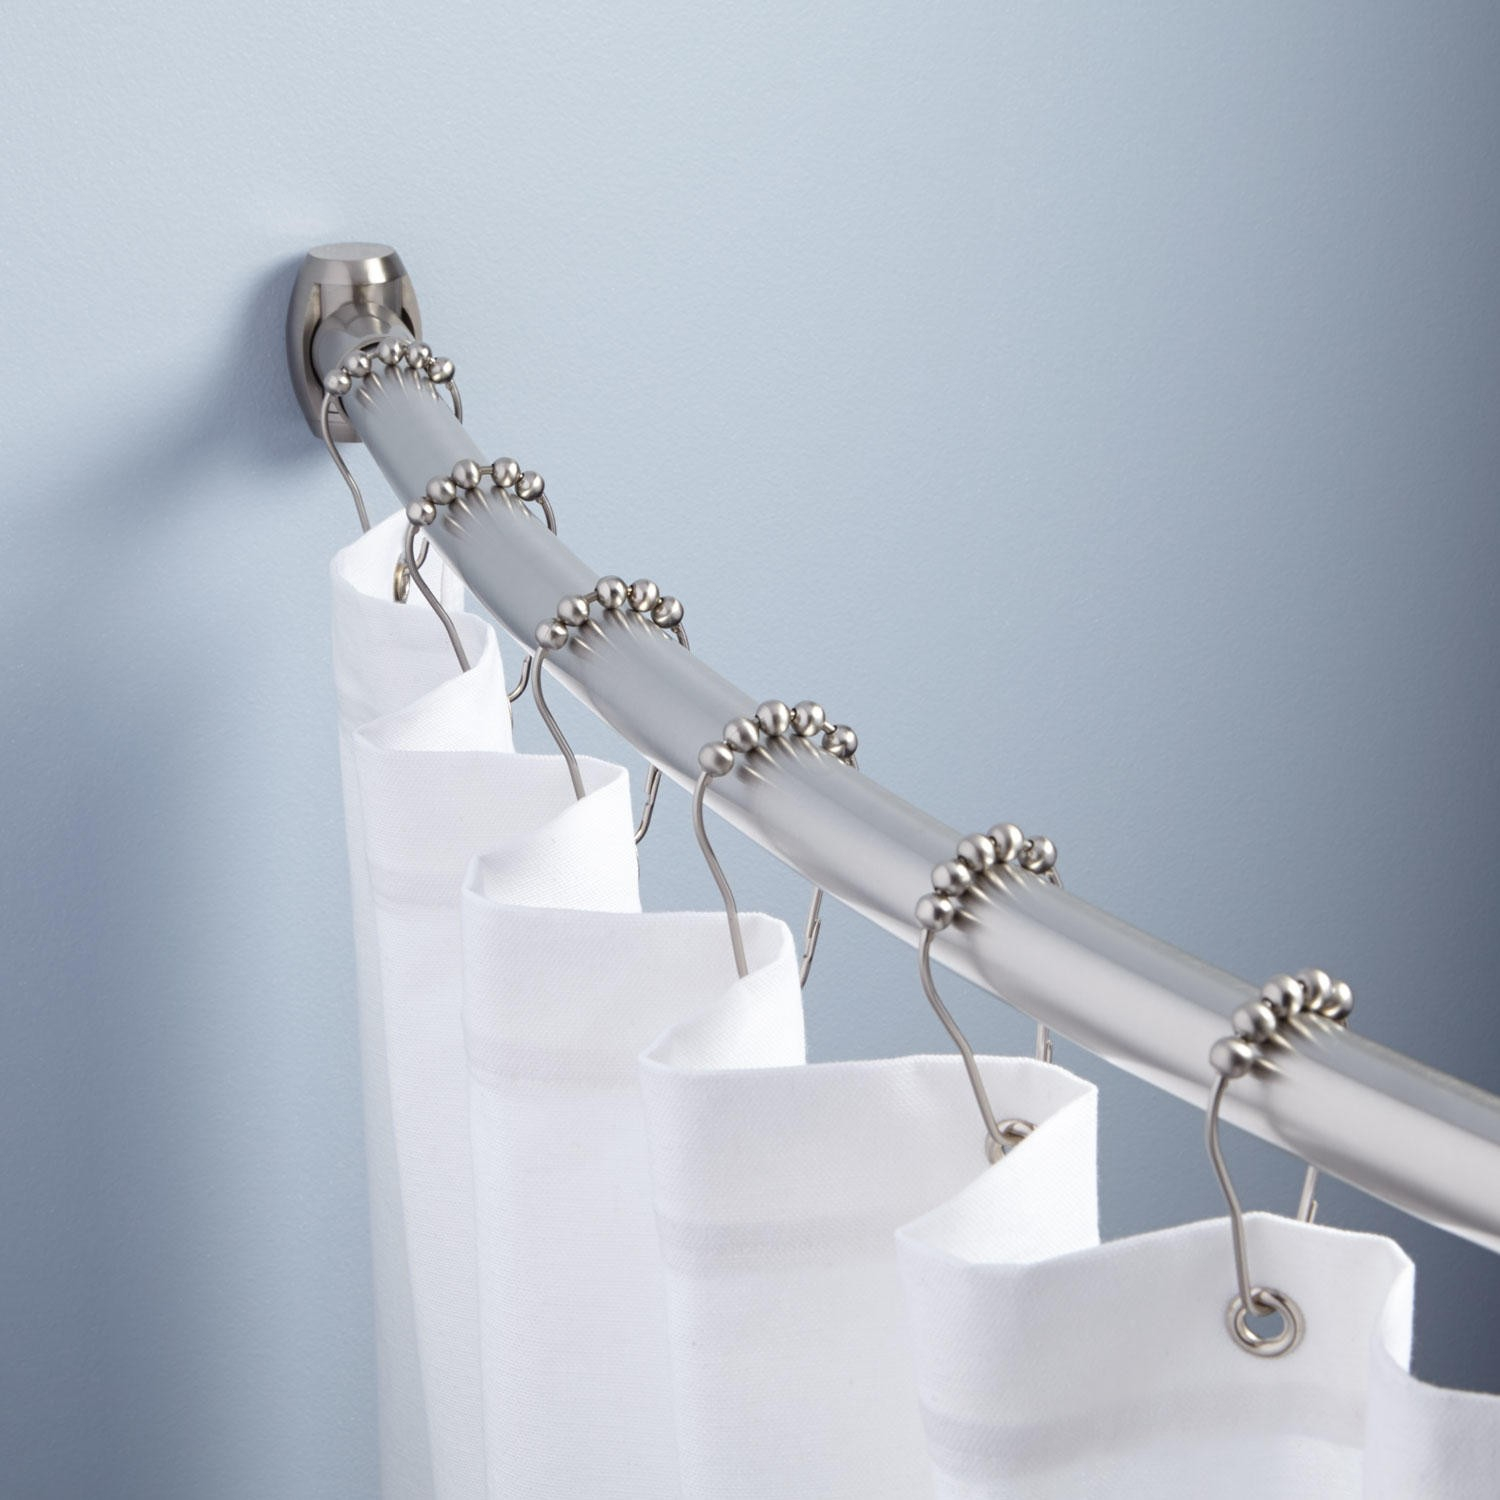 36 Curved Shower Stall Curtain Rod • Shower Curtains Ideas